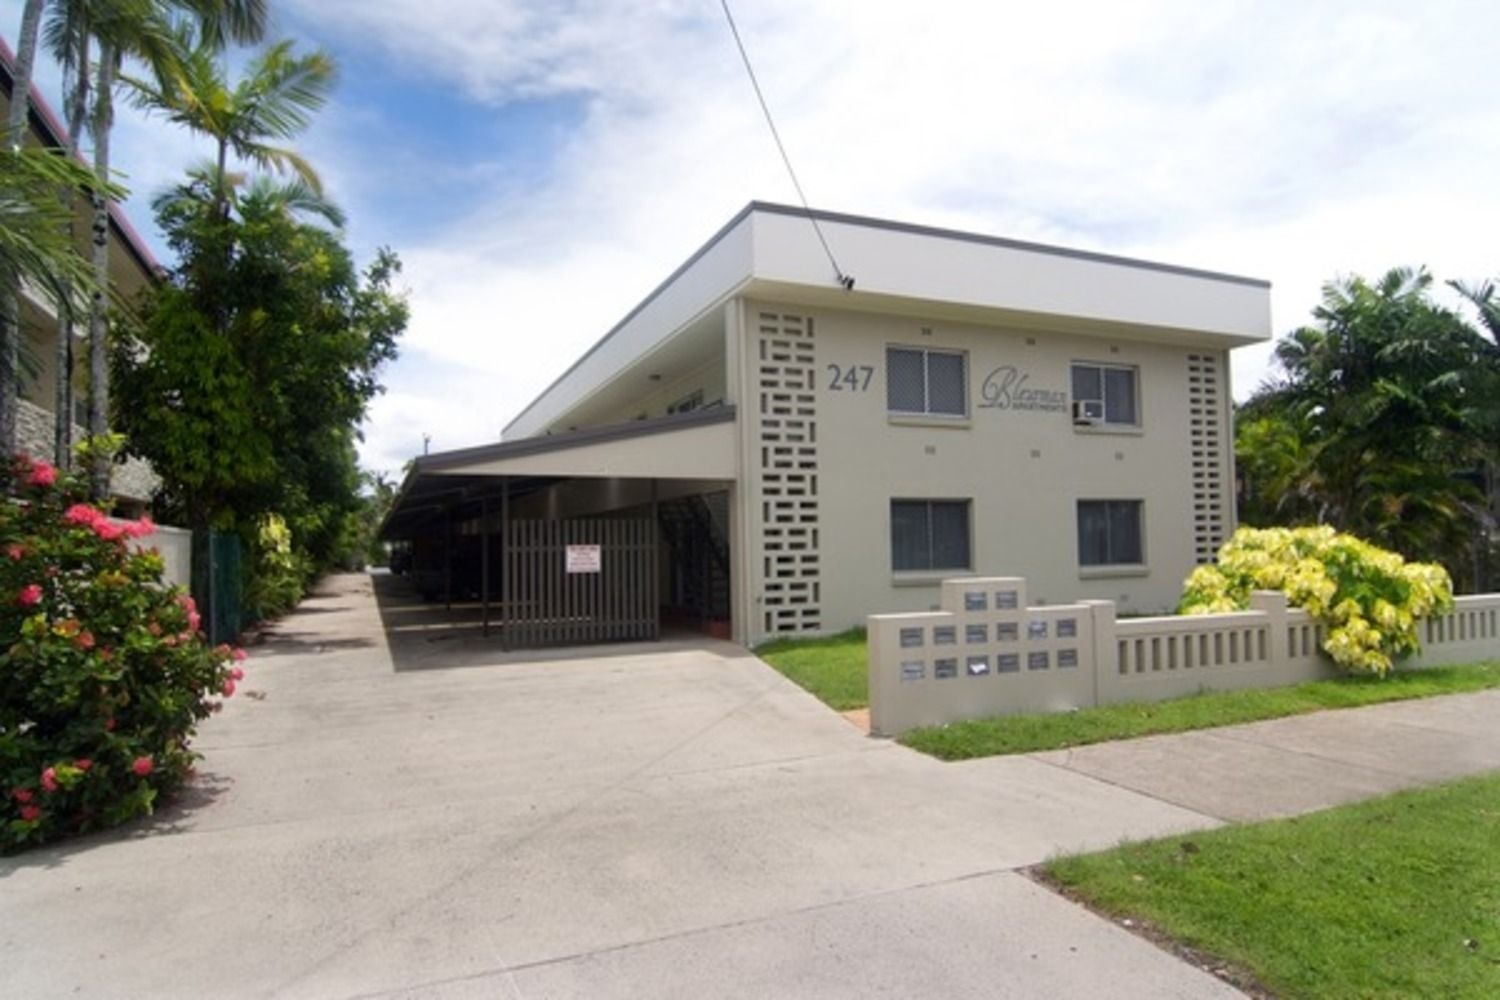 12/247 Sheridan Street, Cairns City QLD 4870, Image 0